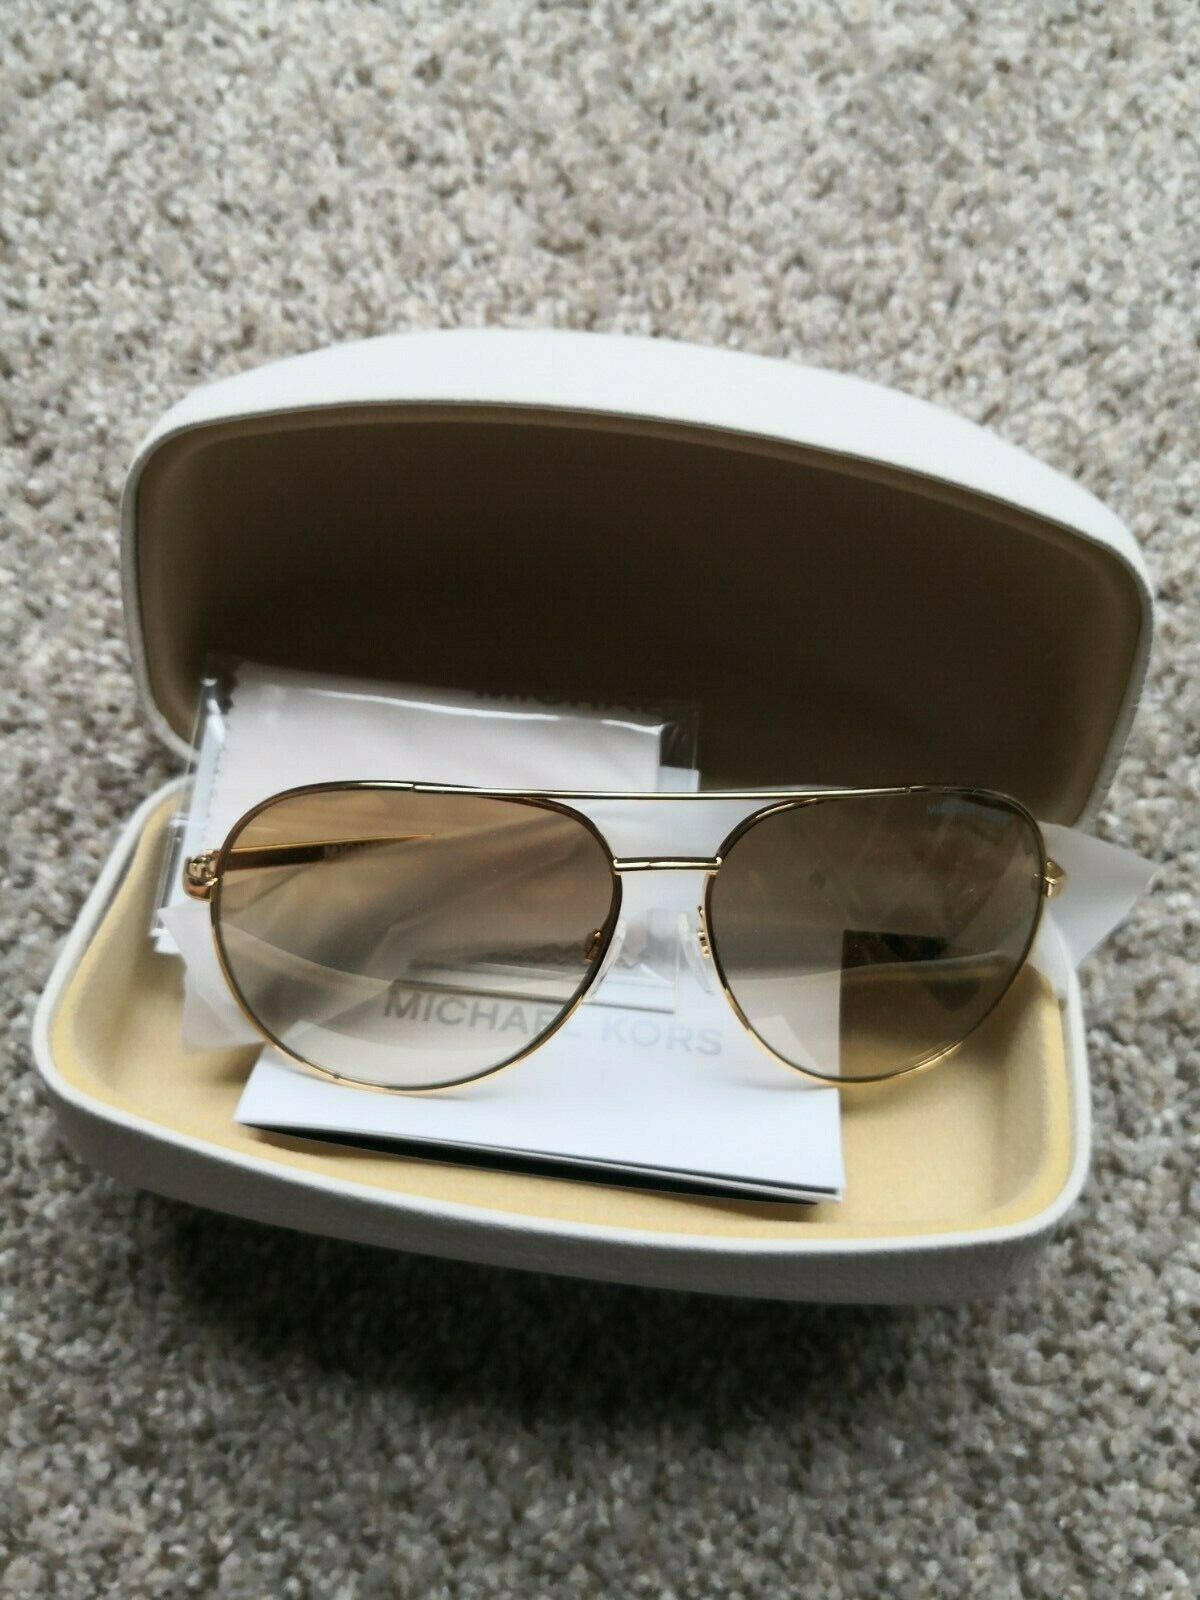 New in Box Authentic Michael Kors Womens Sunglasses Aviators